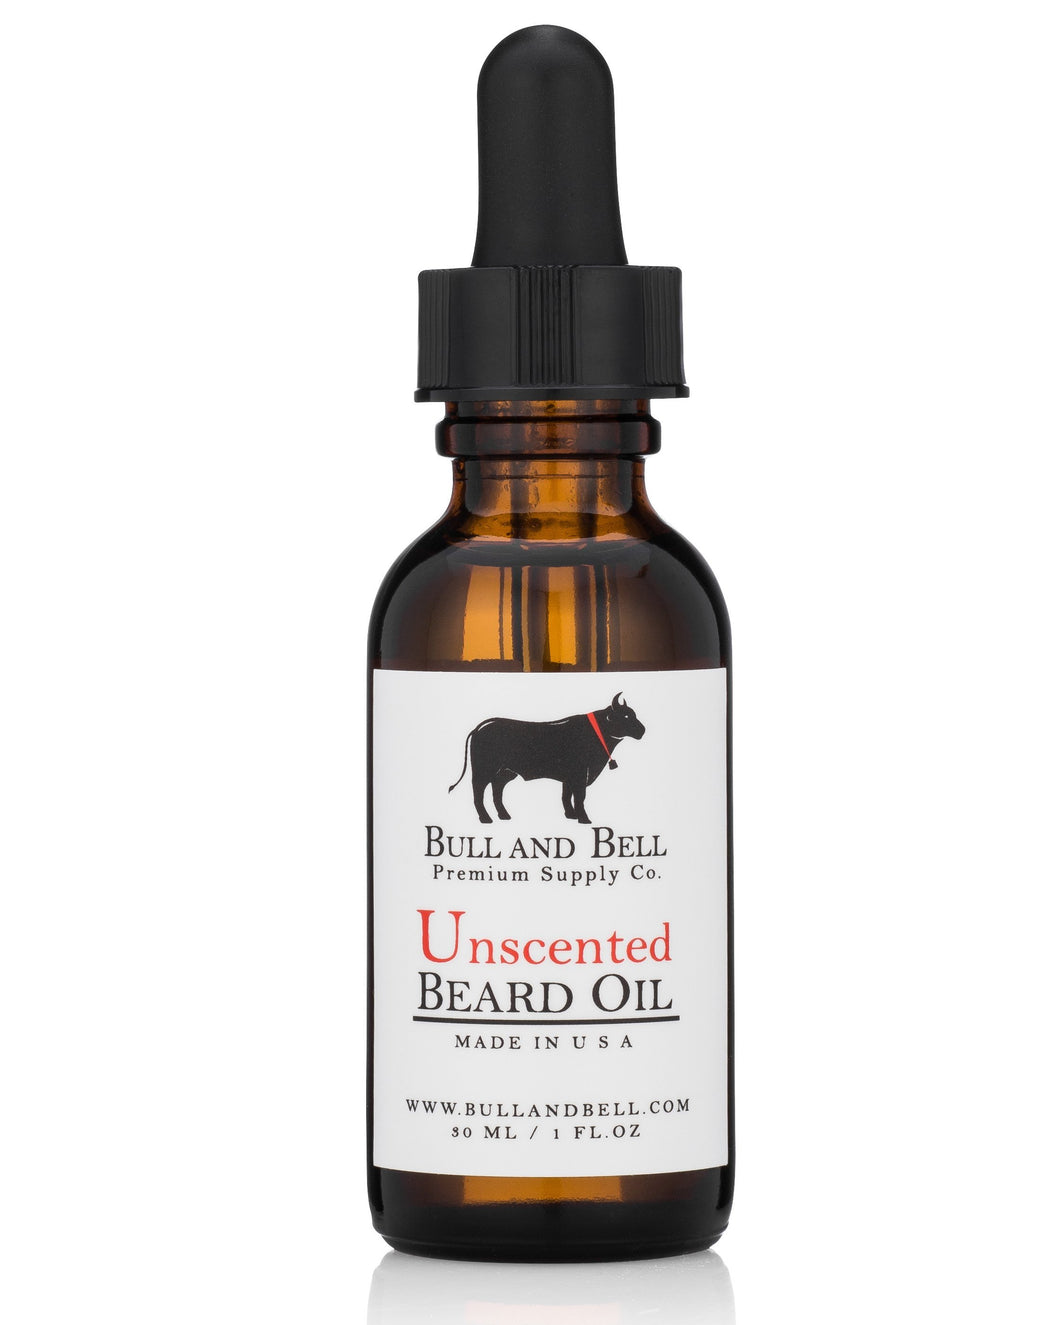 Bull and Bell Unscented Beard Oil